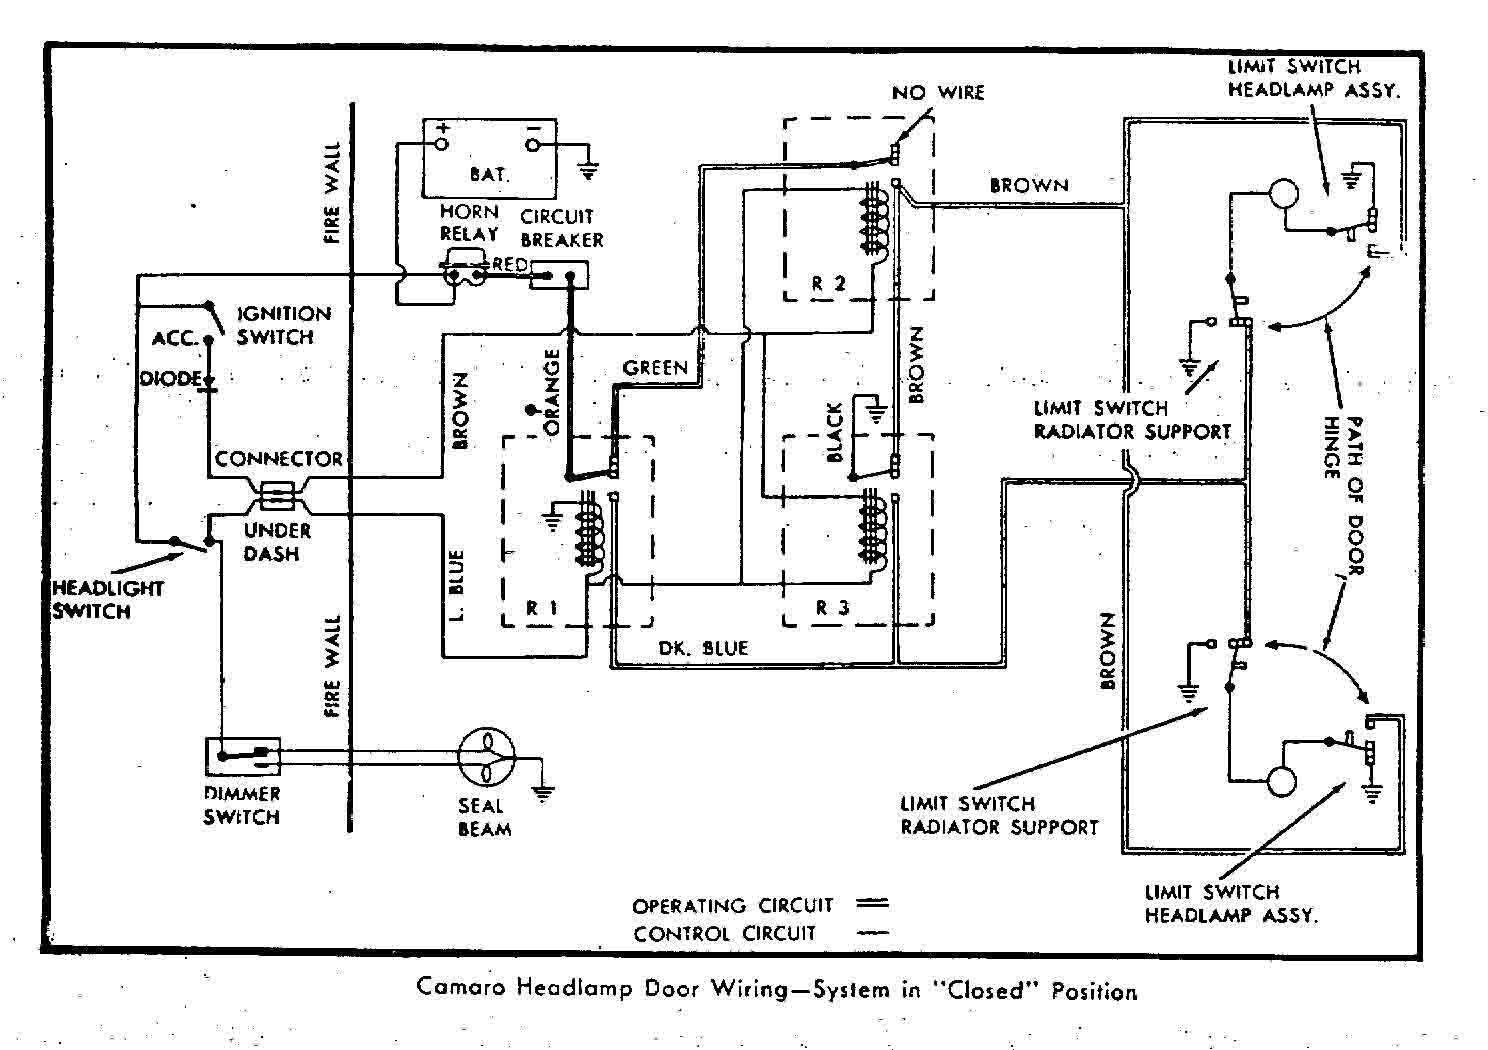 1969 Camaro Light Wiring Diagram - Wiring Diagram Structure on 1969 c10 transmission, 1969 c10 engine, 1969 c10 specs, 1969 c10 chassis, 1969 c10 lights, 1969 c10 exhaust, 1969 c10 parts, 1969 c10 show truck, 1969 c10 schematics,